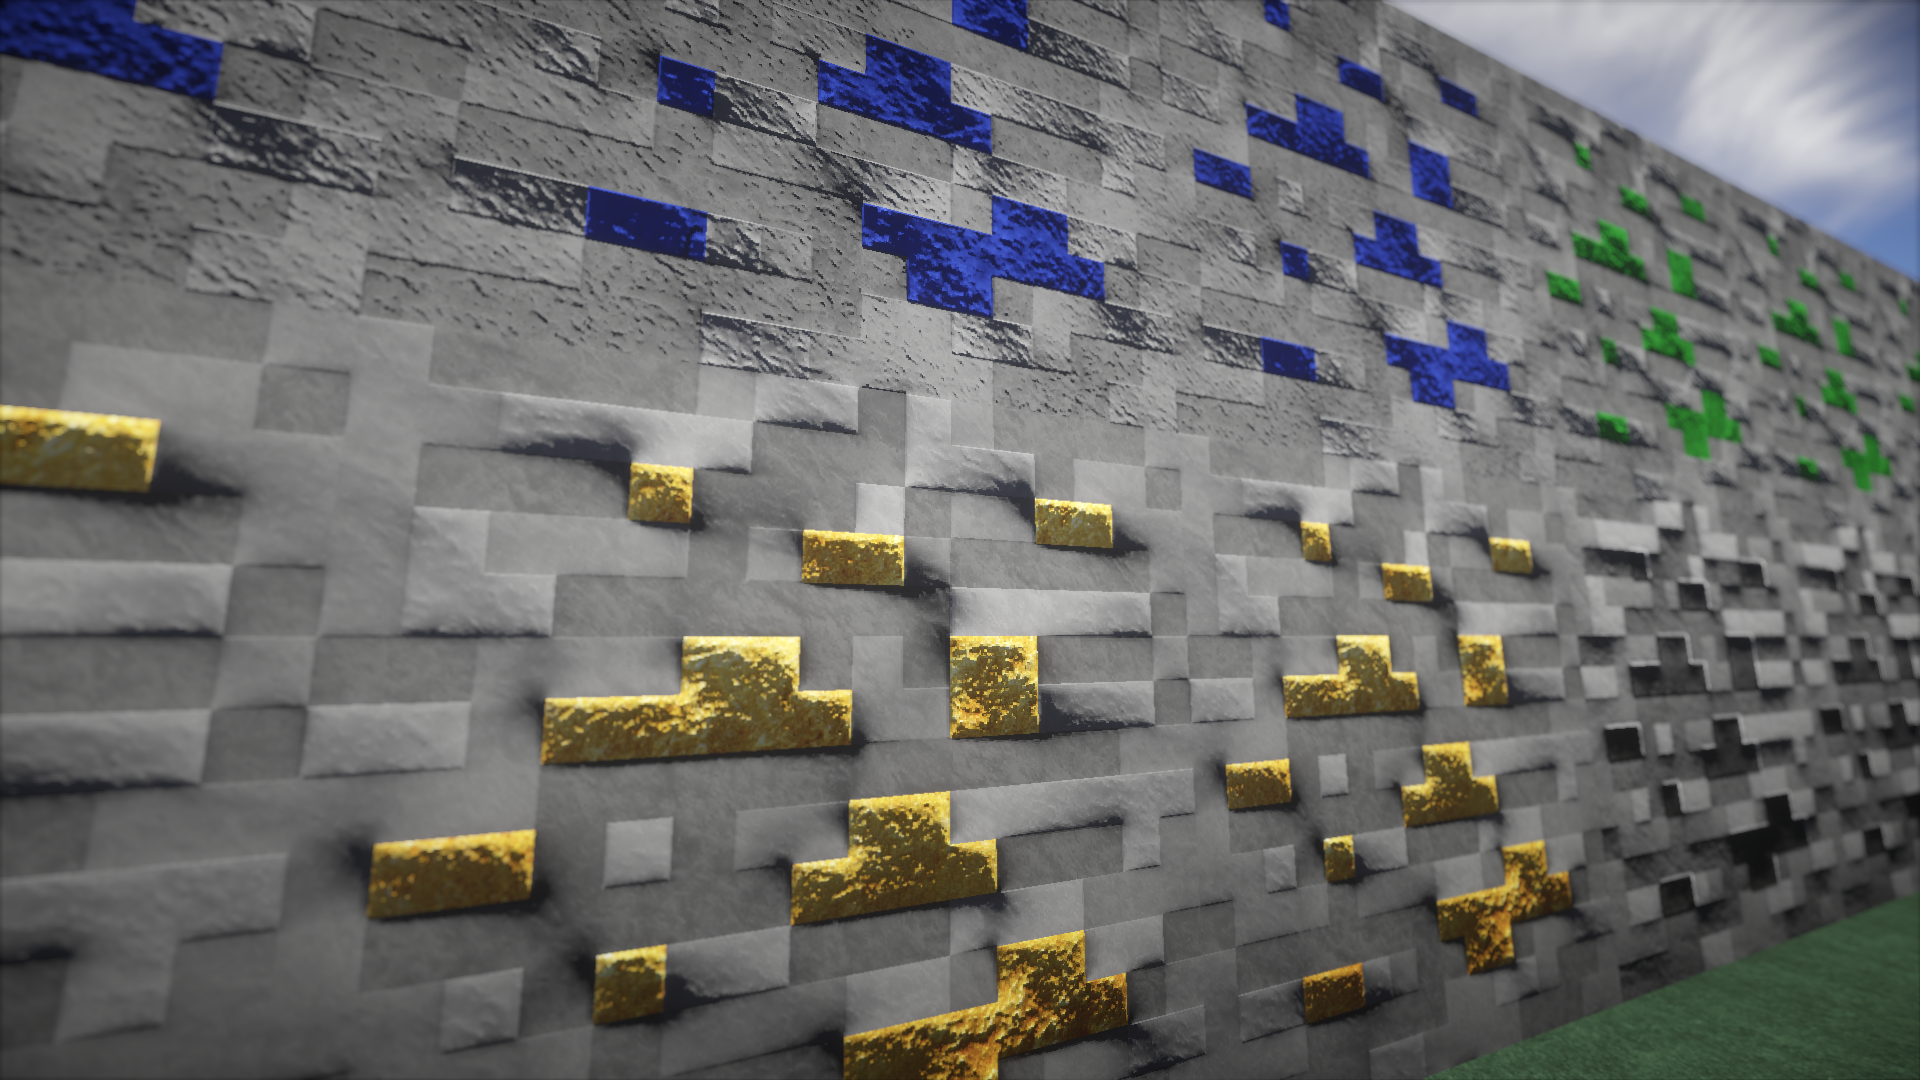 Default Minecraft Texture 512x With Bump Mapping and support to 1.9 [Textura Padrão do Minecraft ...